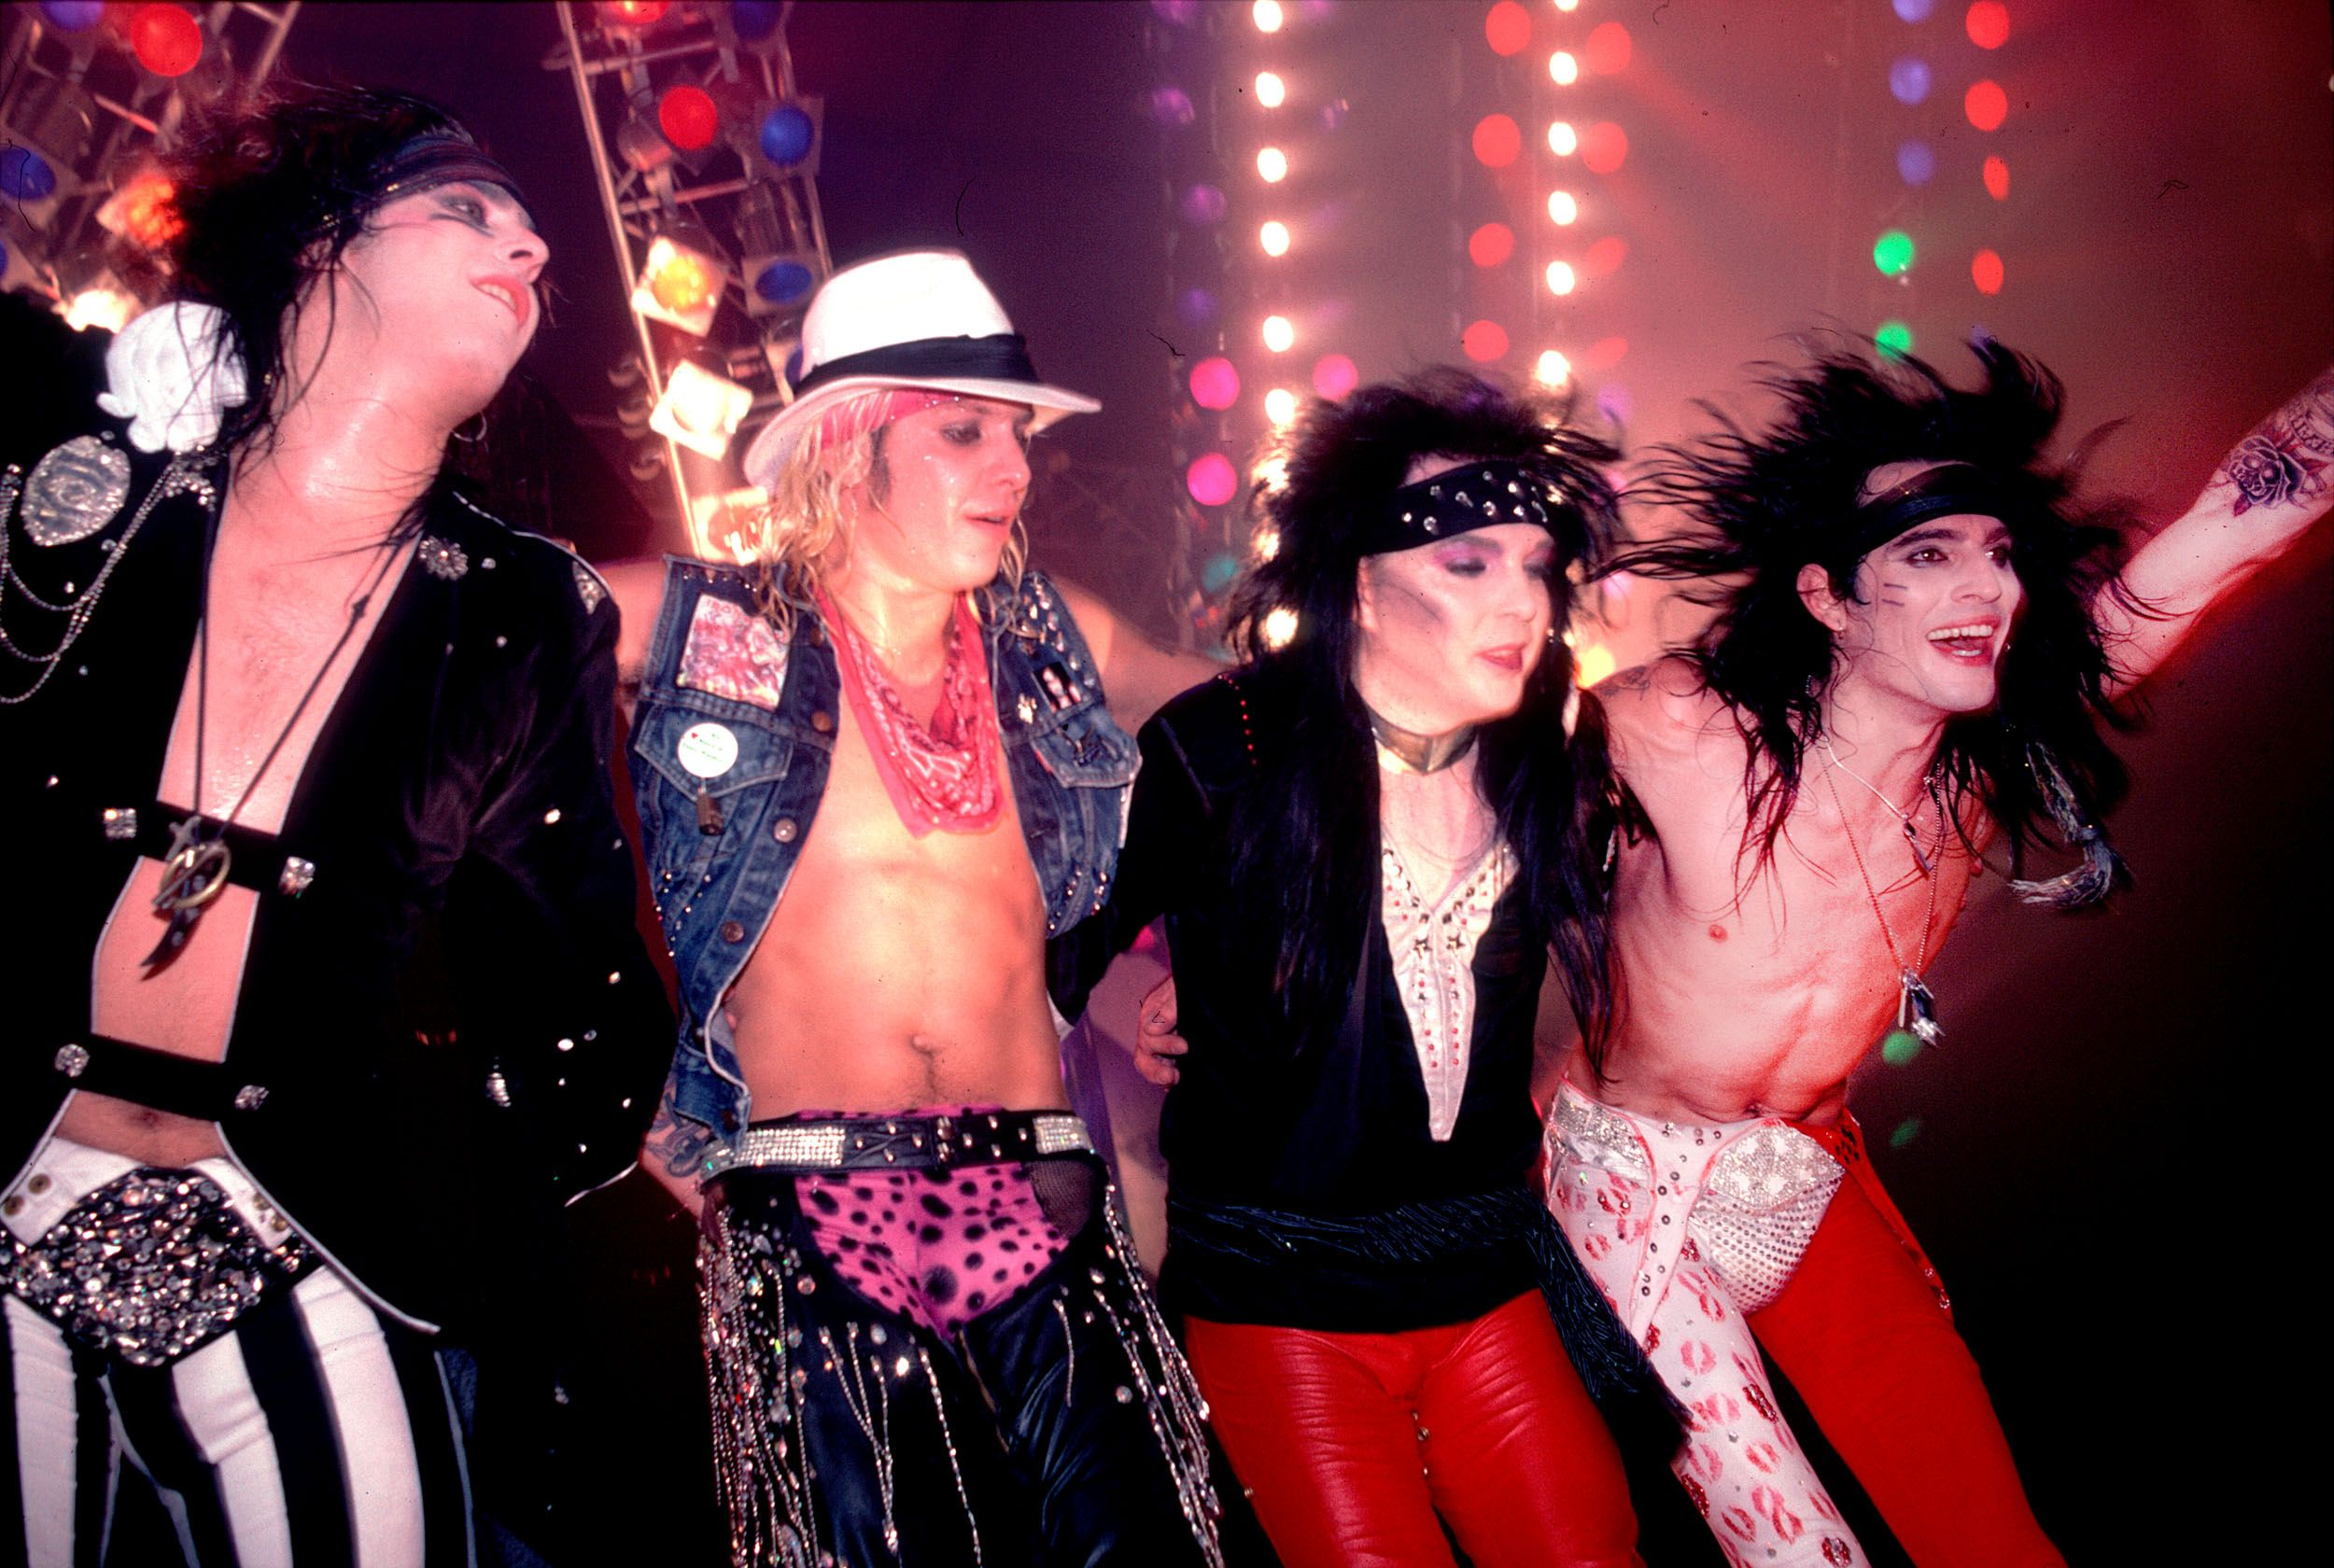 Mötley Crüe performing at the Rosemont Horizon in Rosemont, Illinois, November 1, 1985.